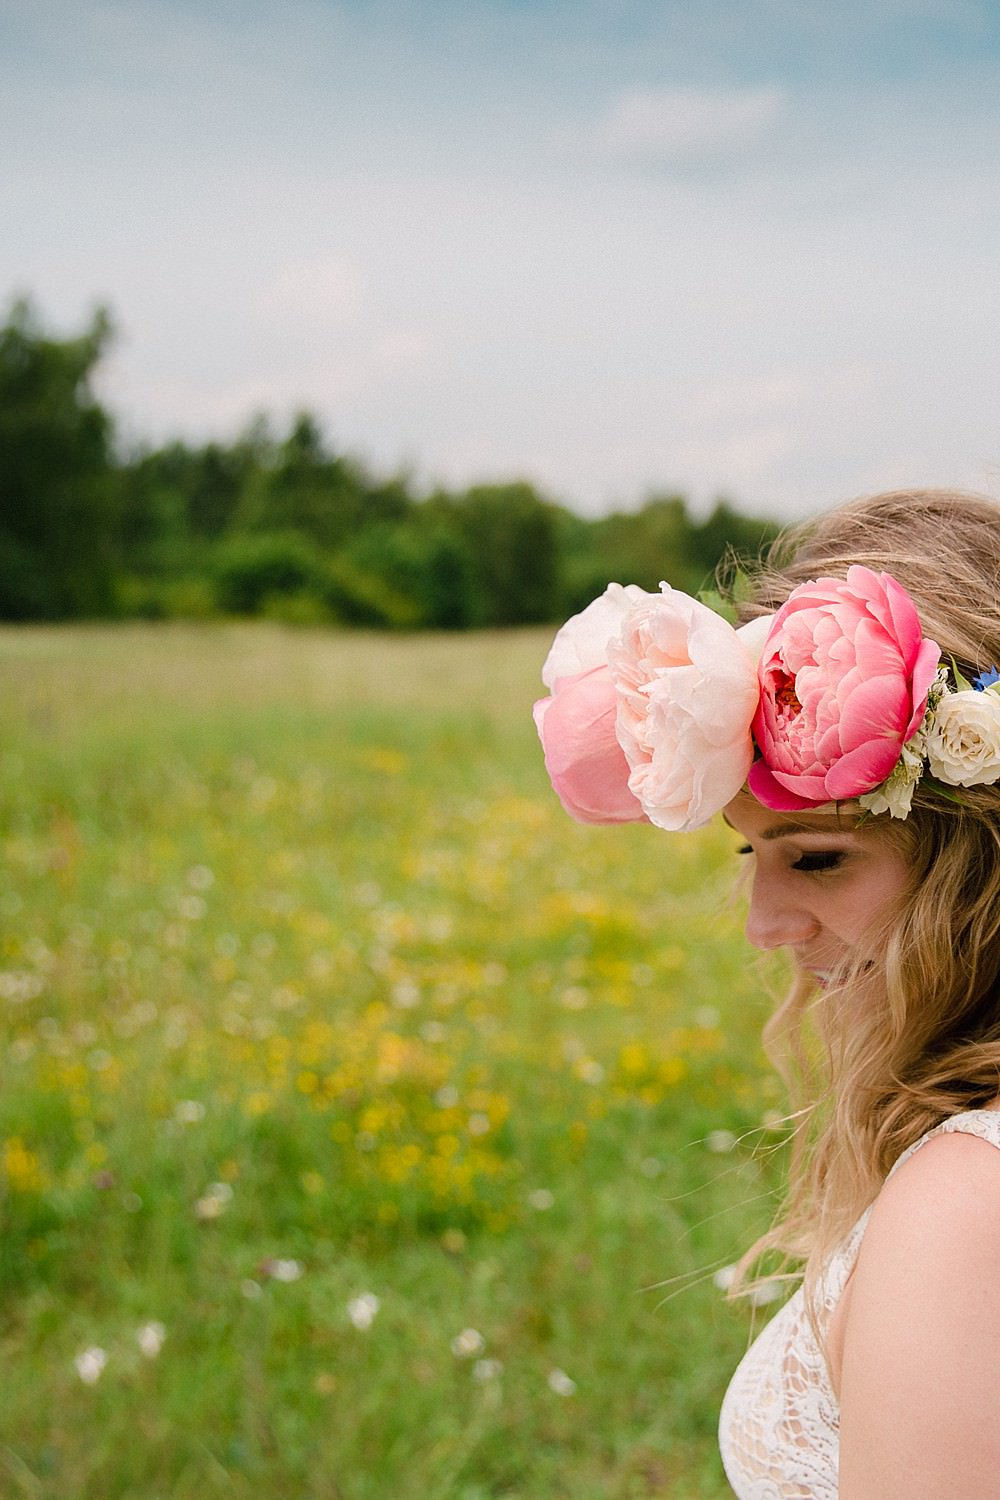 Flower Crown Bride Bridal Pink Peony Peonies Pet Wedding Ideas Vicky Plum Photography